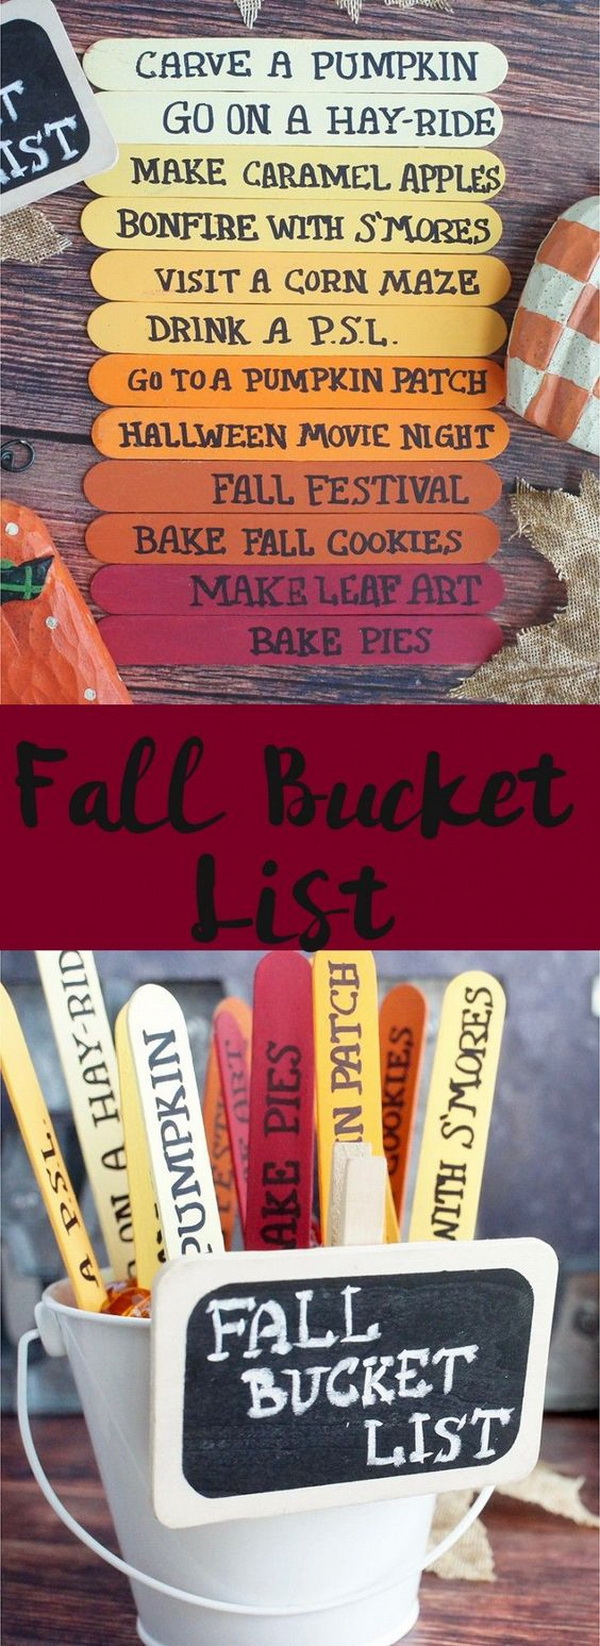 Fall Bucket List. Great fall crafts for kids to make this season! And also be a creative decor project all fall long!